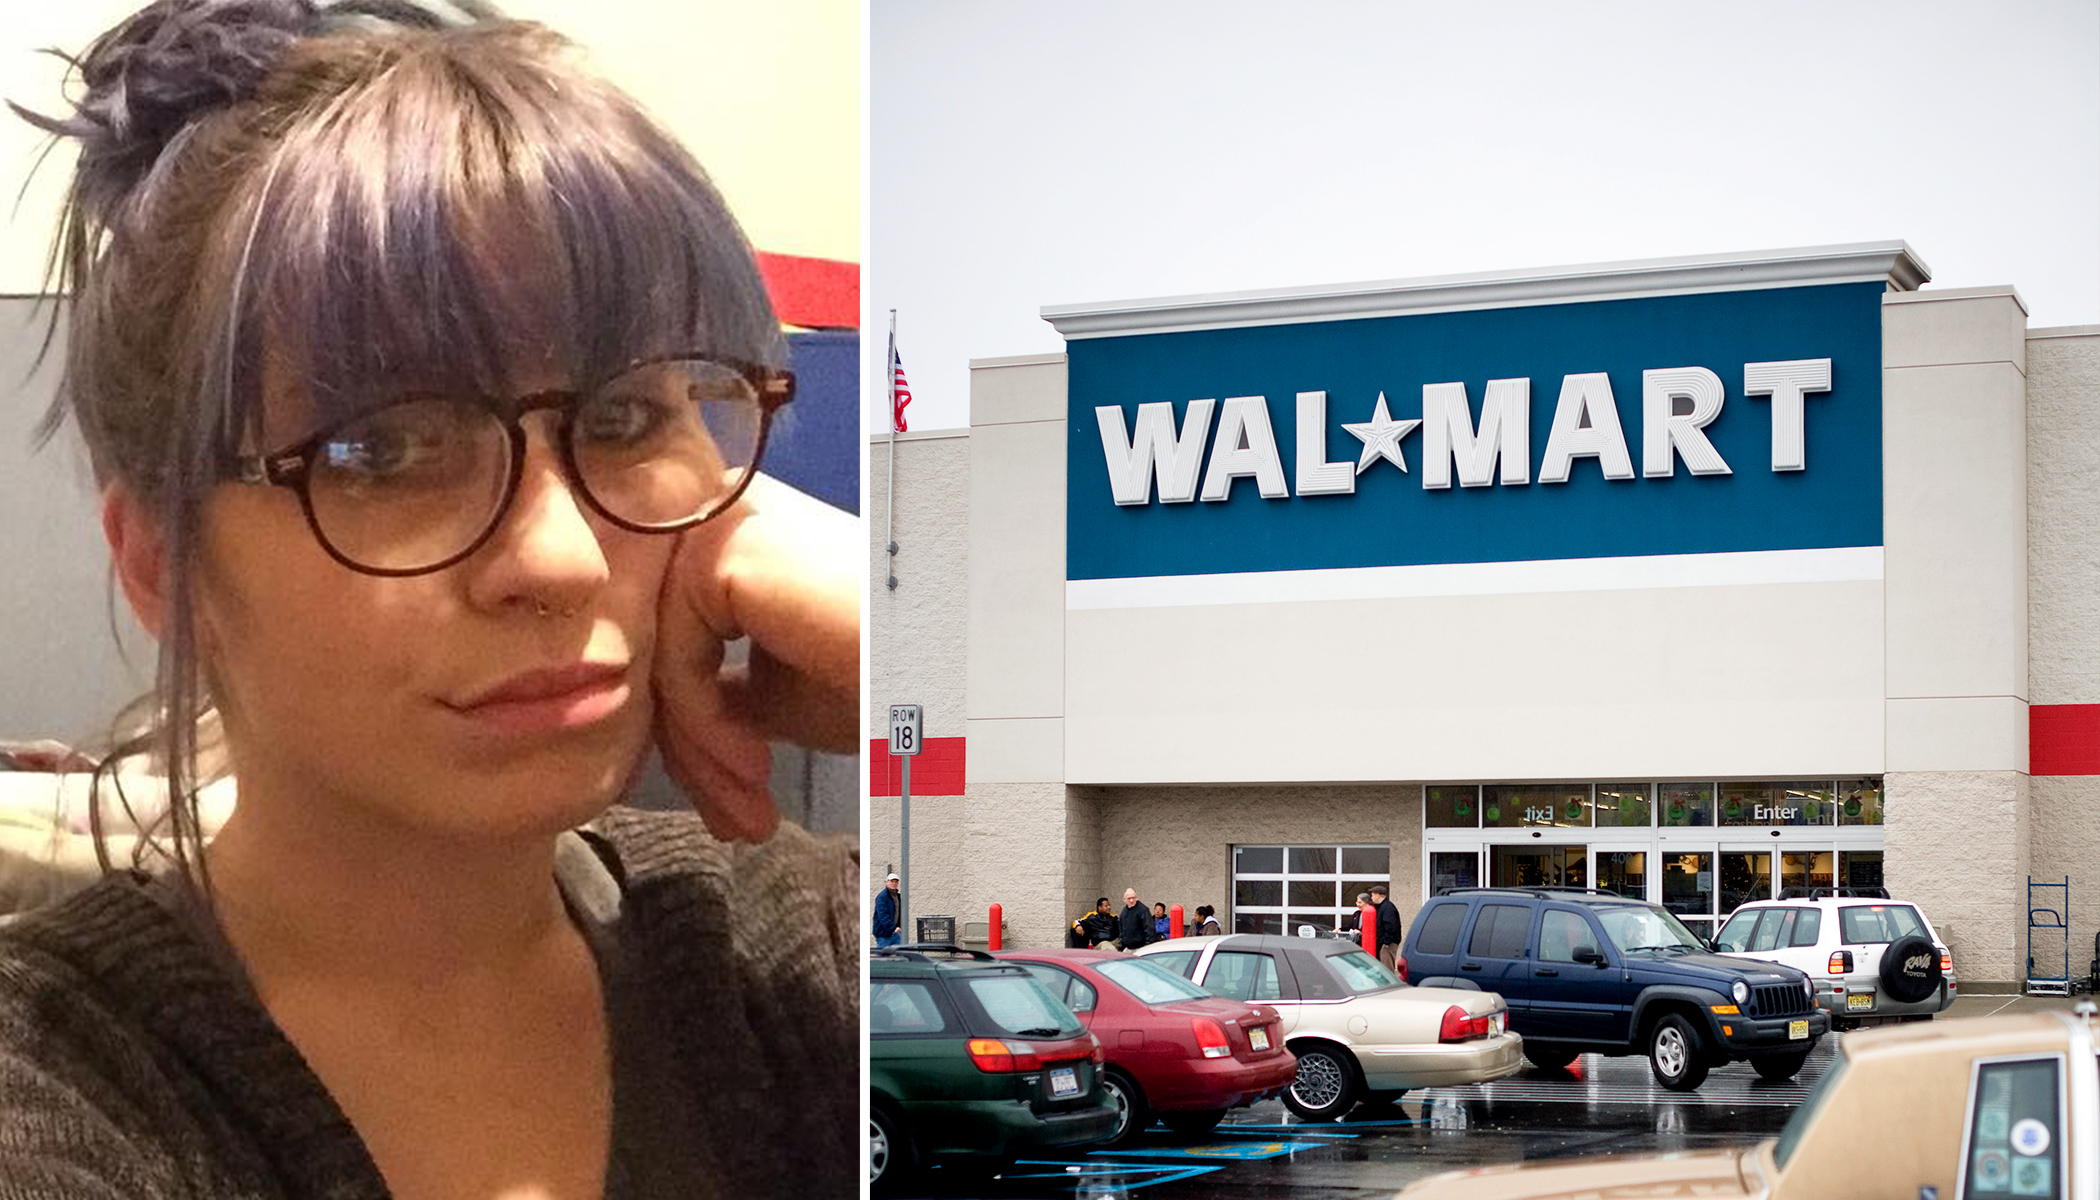 Shopper at Walmart Asks 4-Year-Old to 'Shut Up,' Heartbroken Mom Hits Back